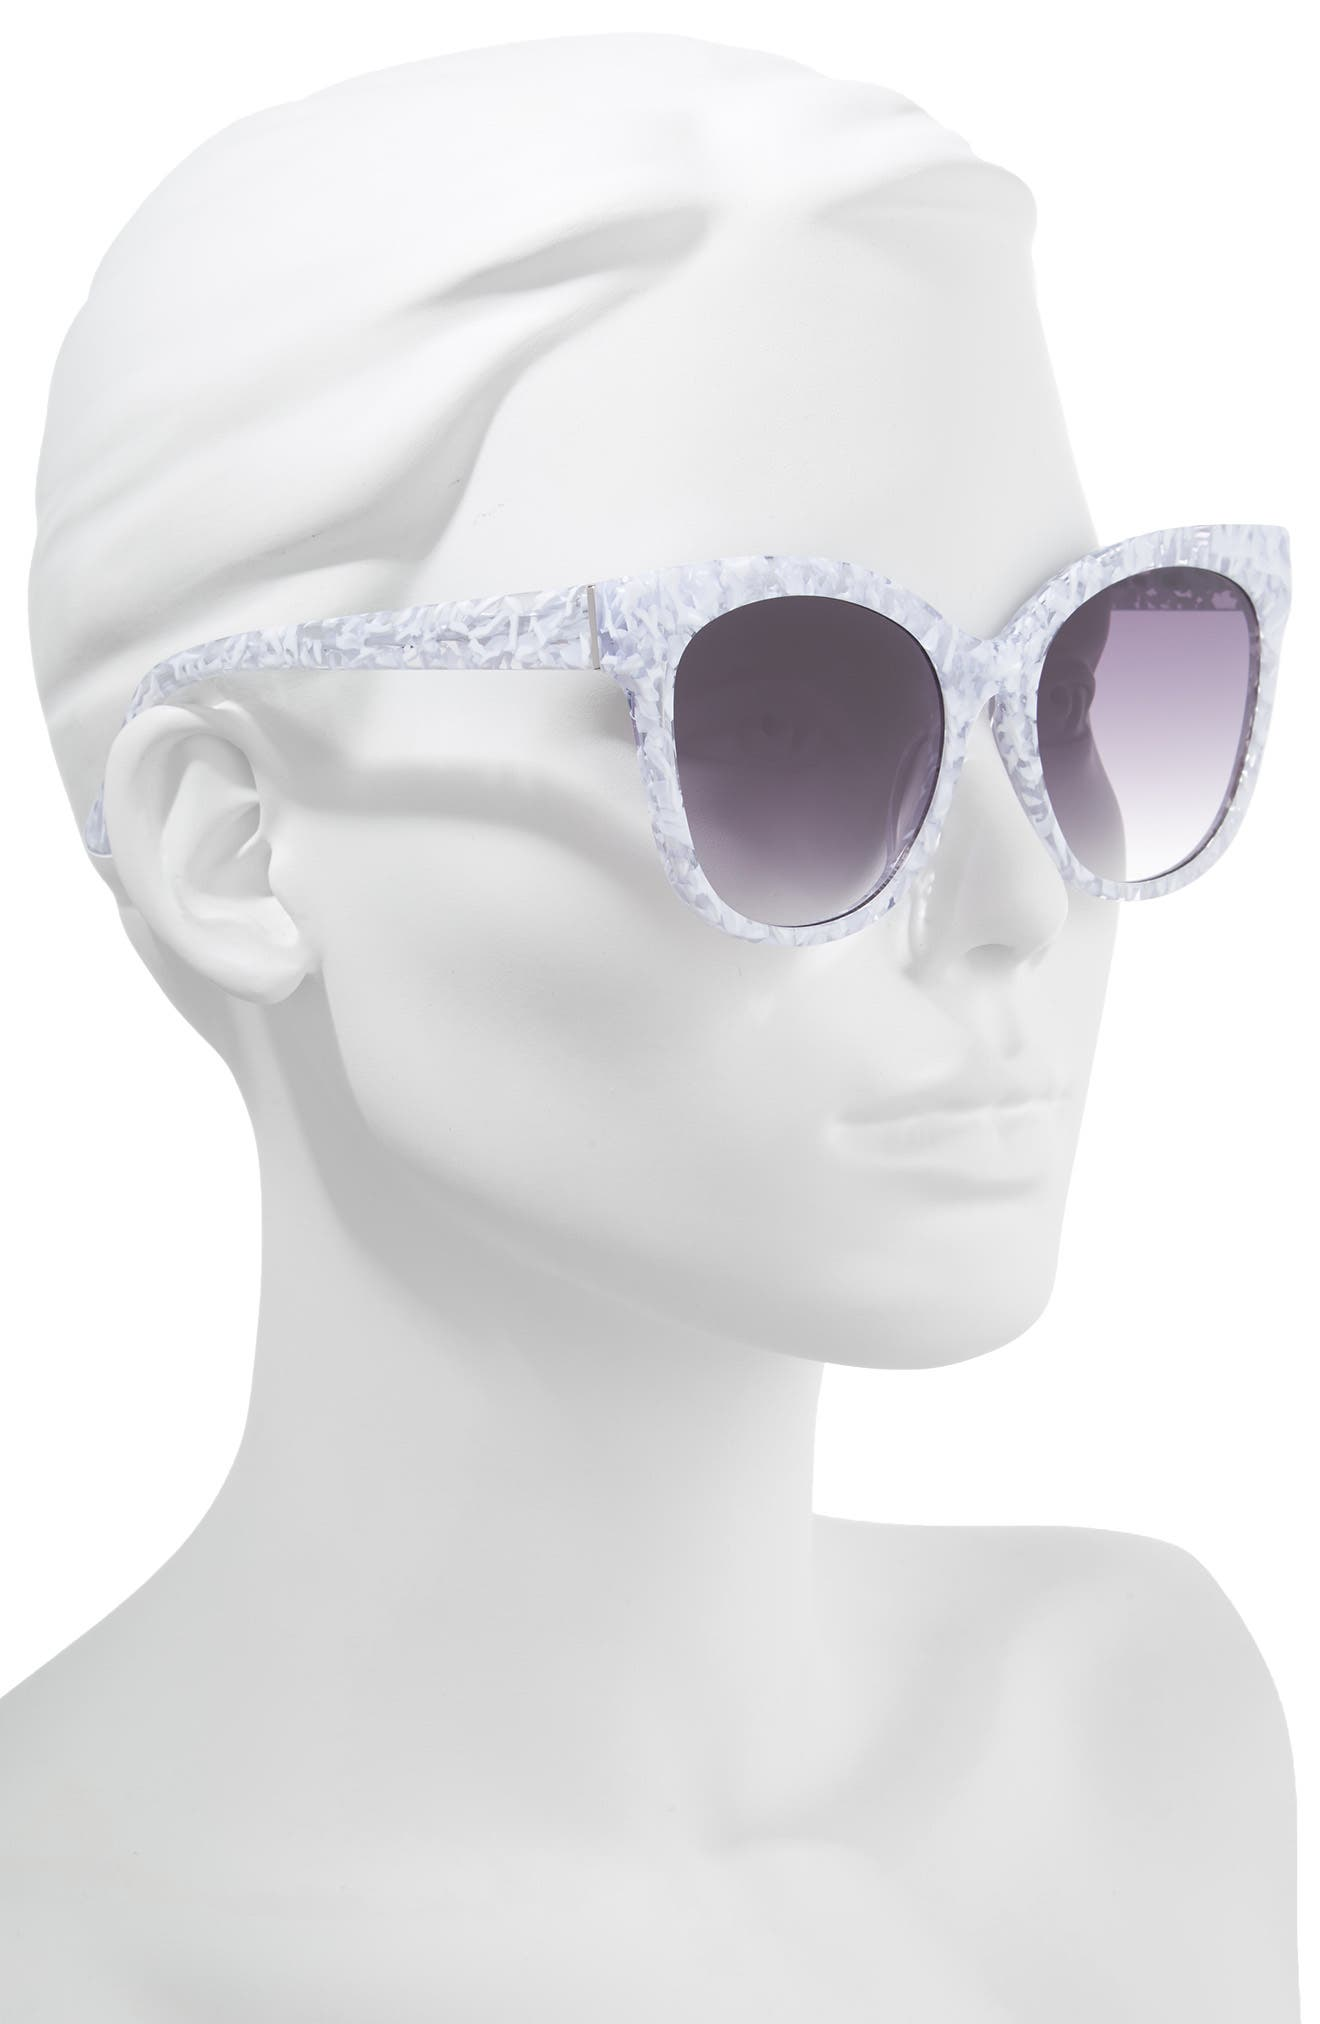 Bossa Nova 57mm Cat Eye Sunglasses,                             Alternate thumbnail 2, color,                             White Speckle